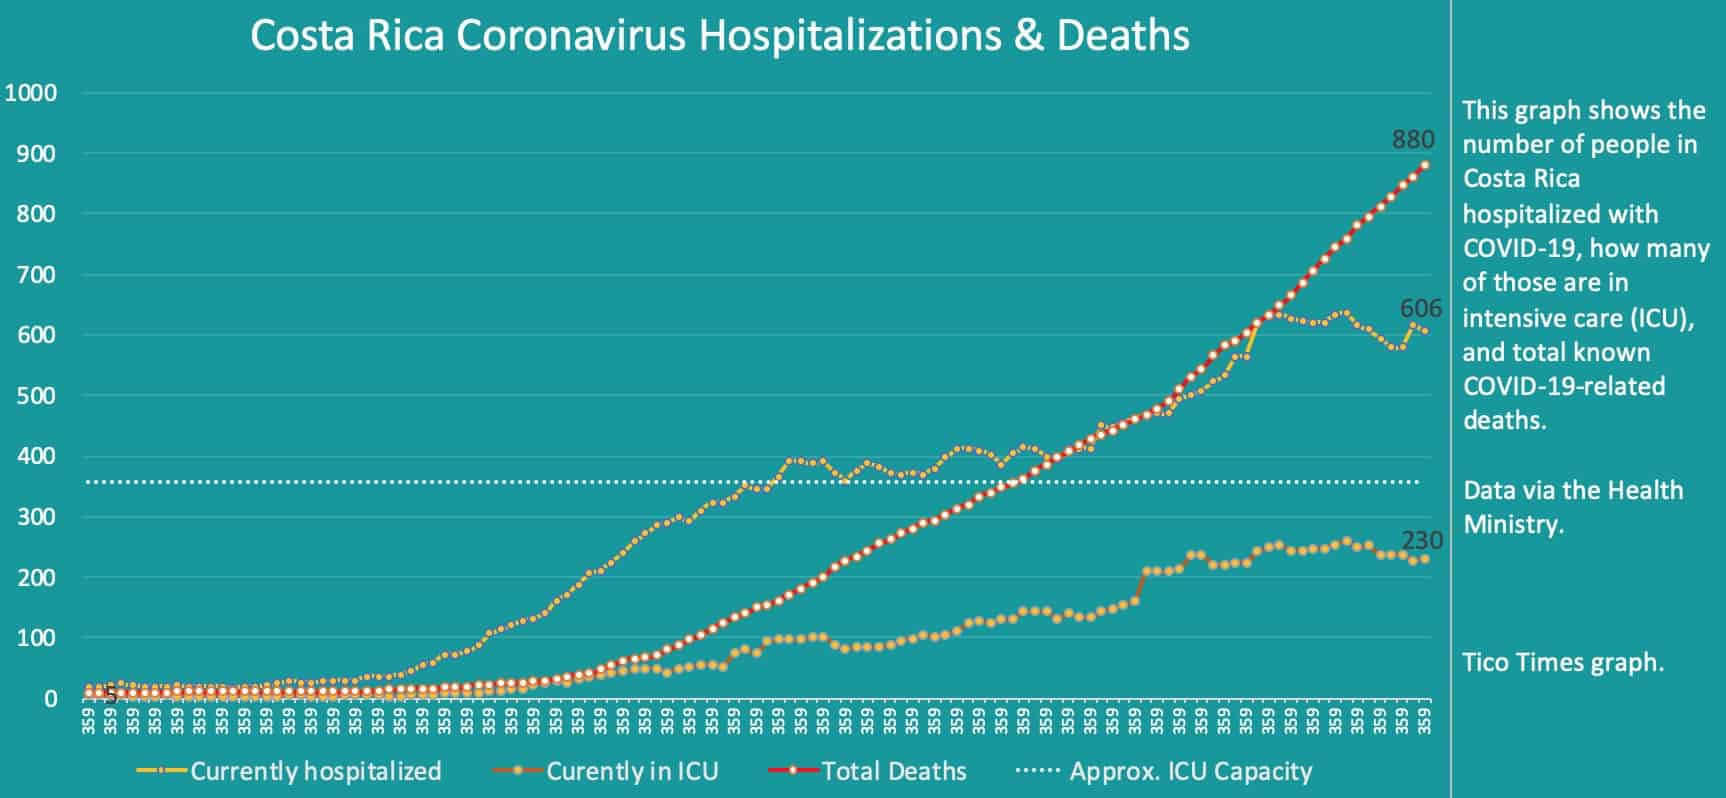 Costa Rica coronavirus hospitalizations and deaths on September 29, 2020